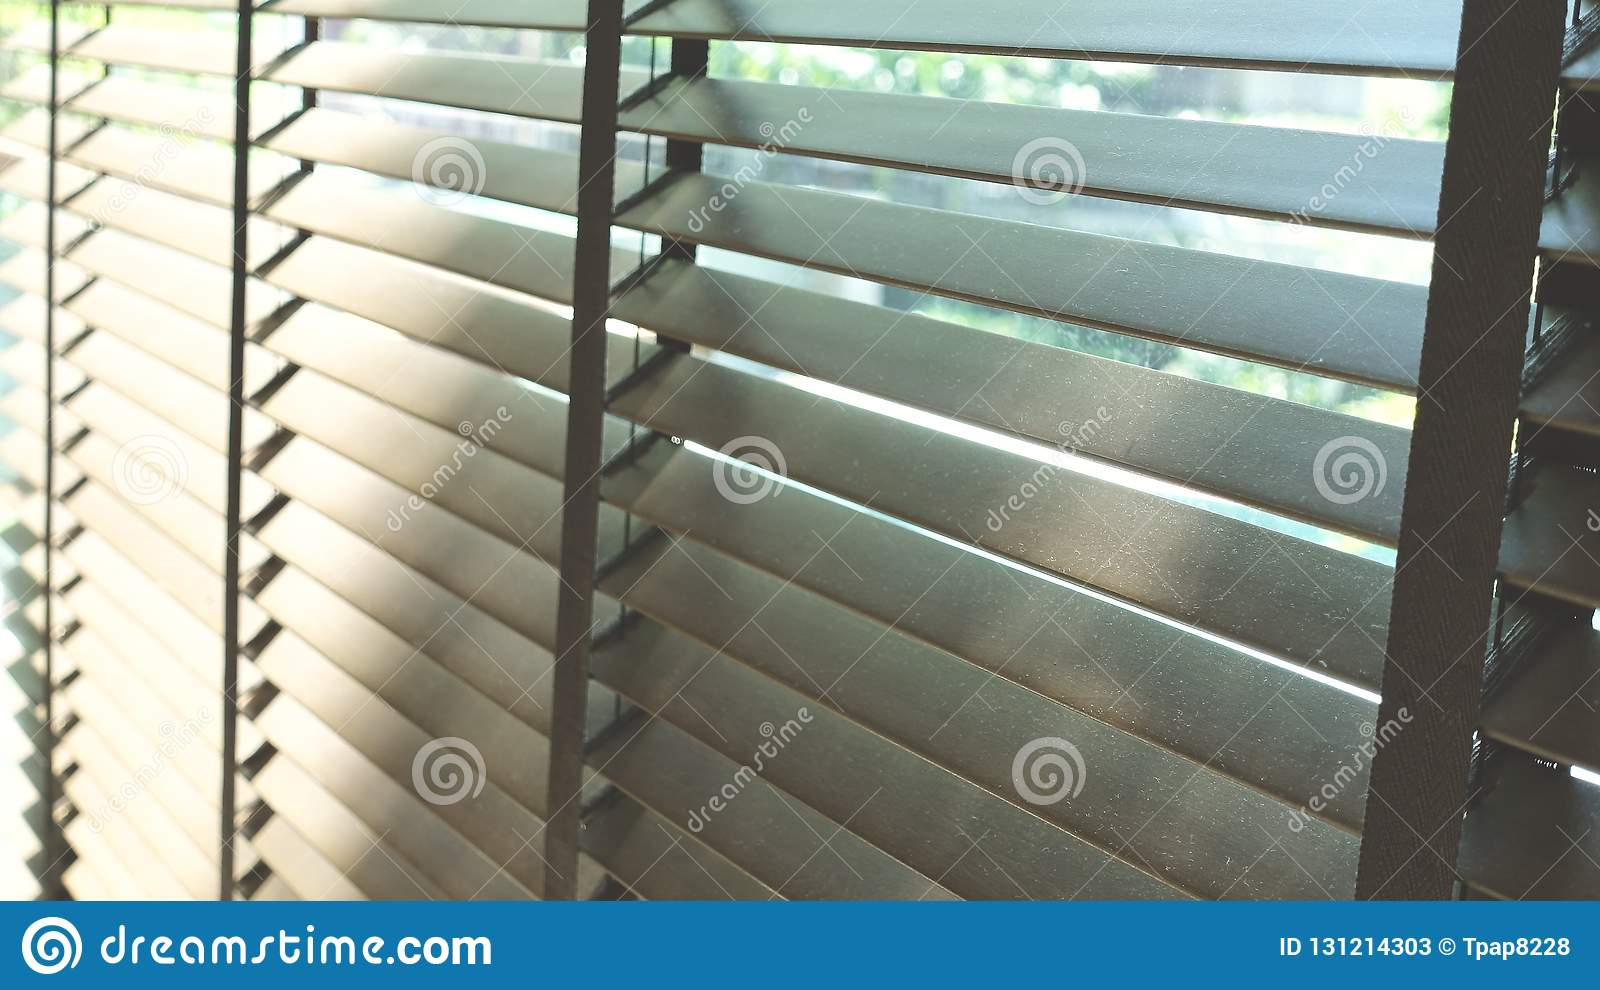 Blinds Evening Sun Light Outside Window Blinds Sunshine And Shadow On Window Blind Decorative Interior In Home Stock Image Image Of Blind Bright 131214303